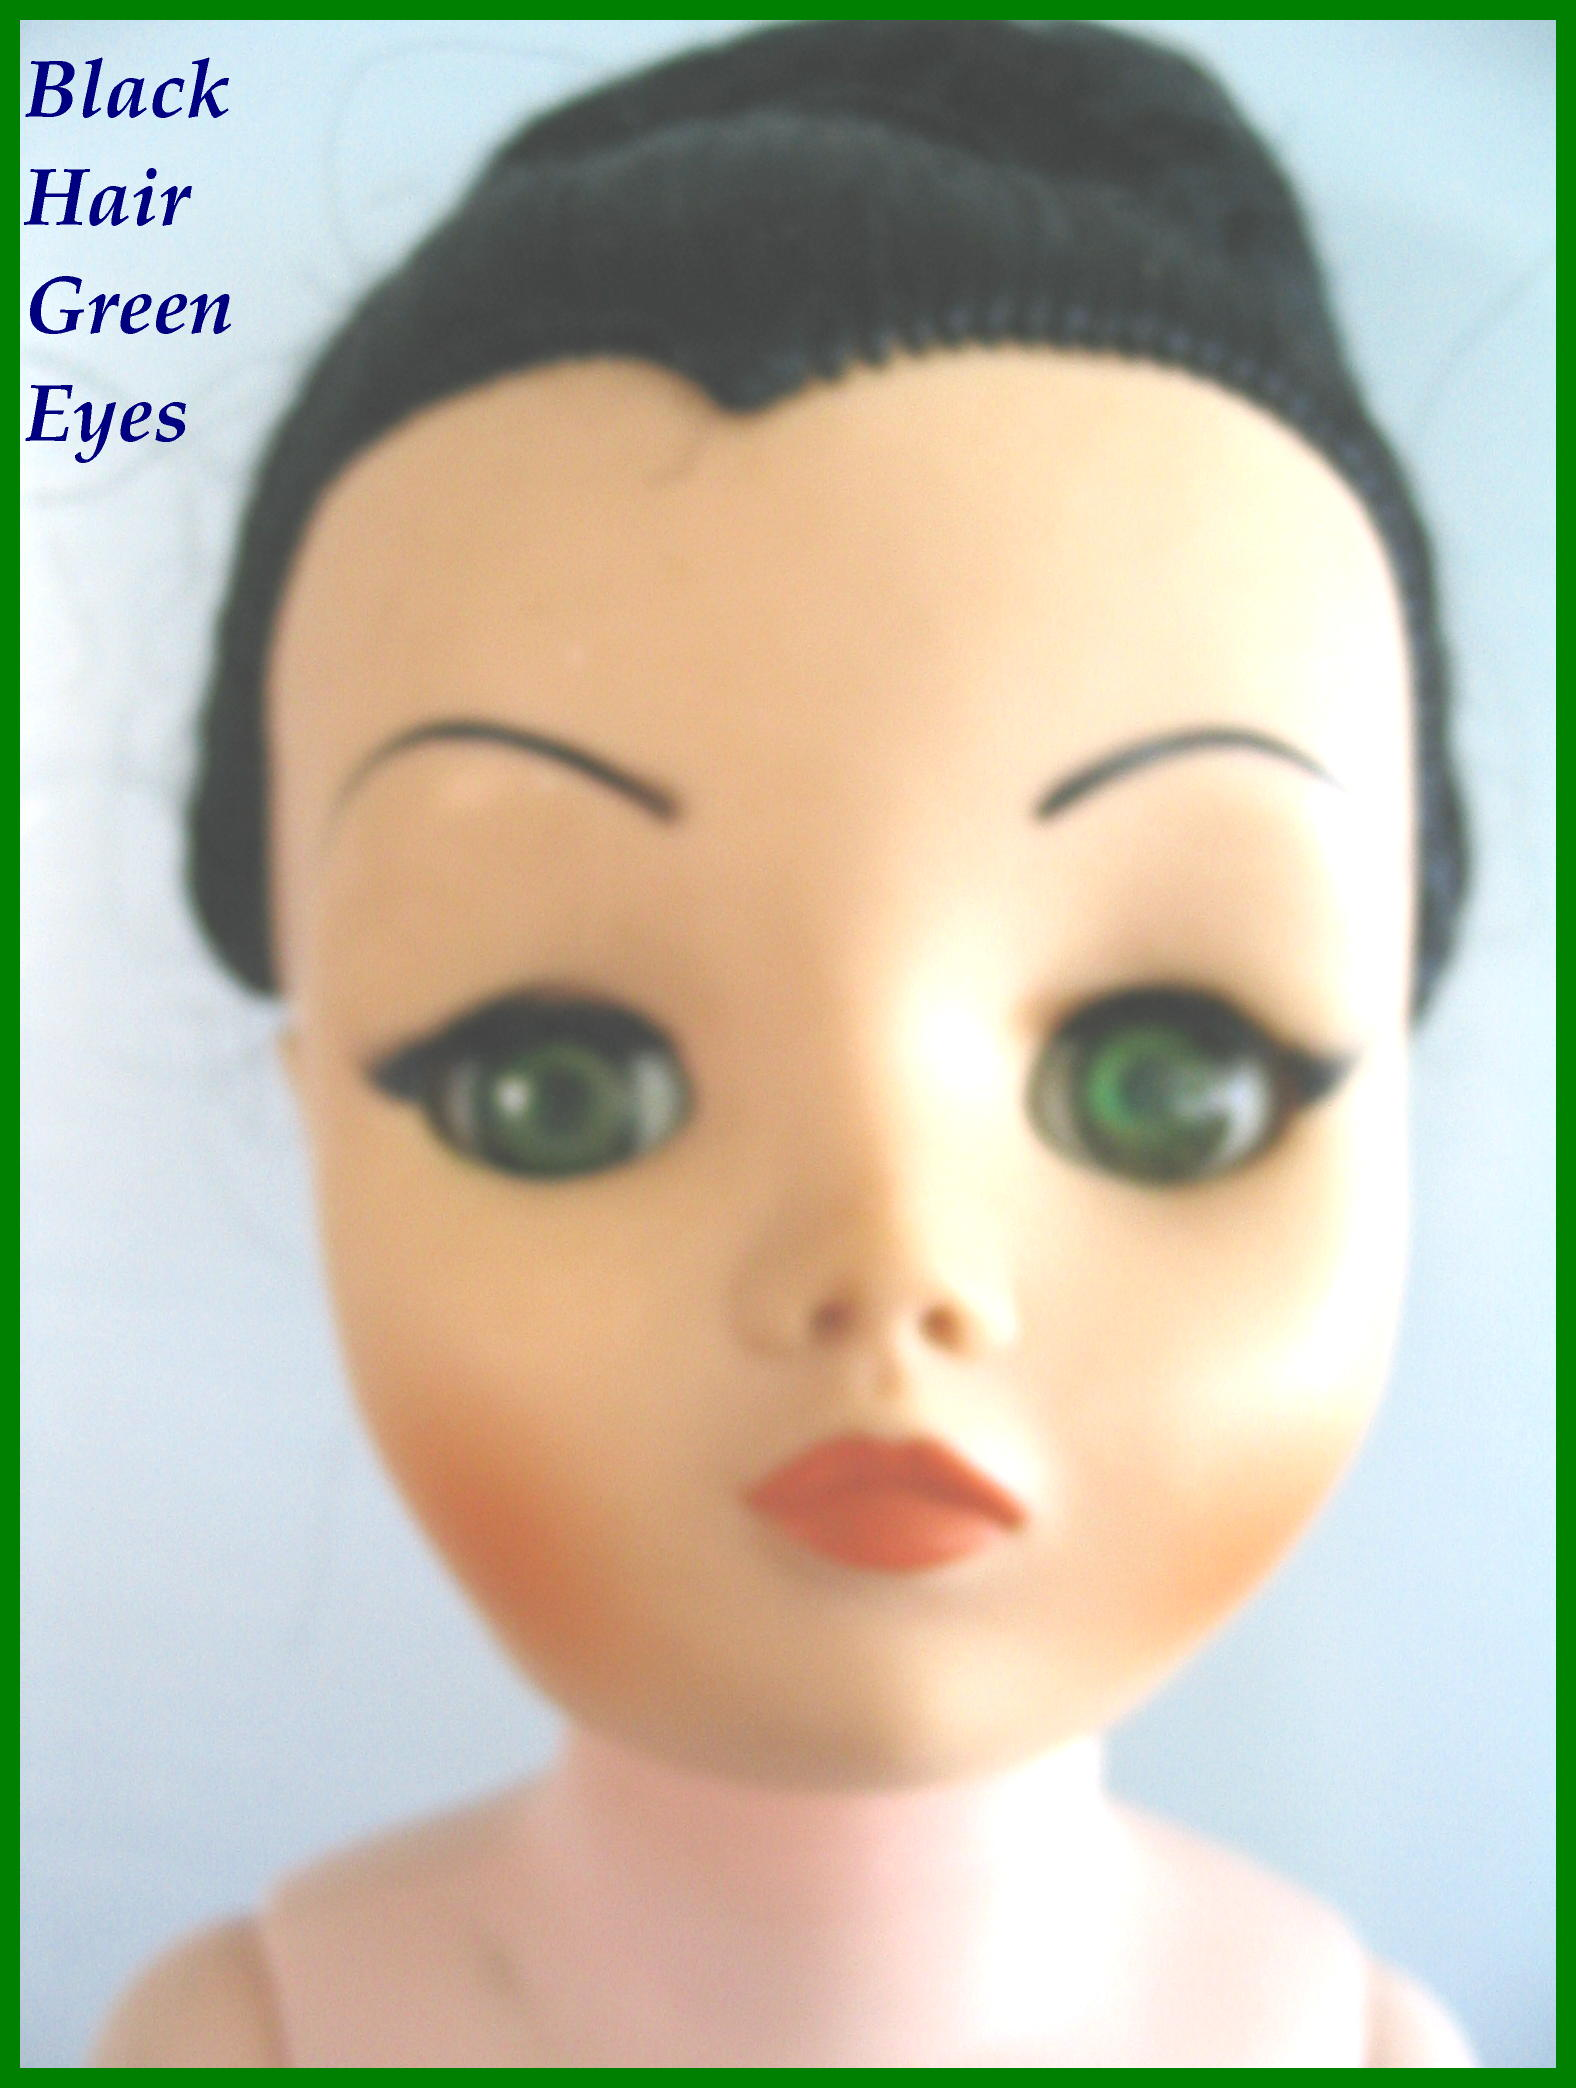 blackhairgreeneyes.jpg